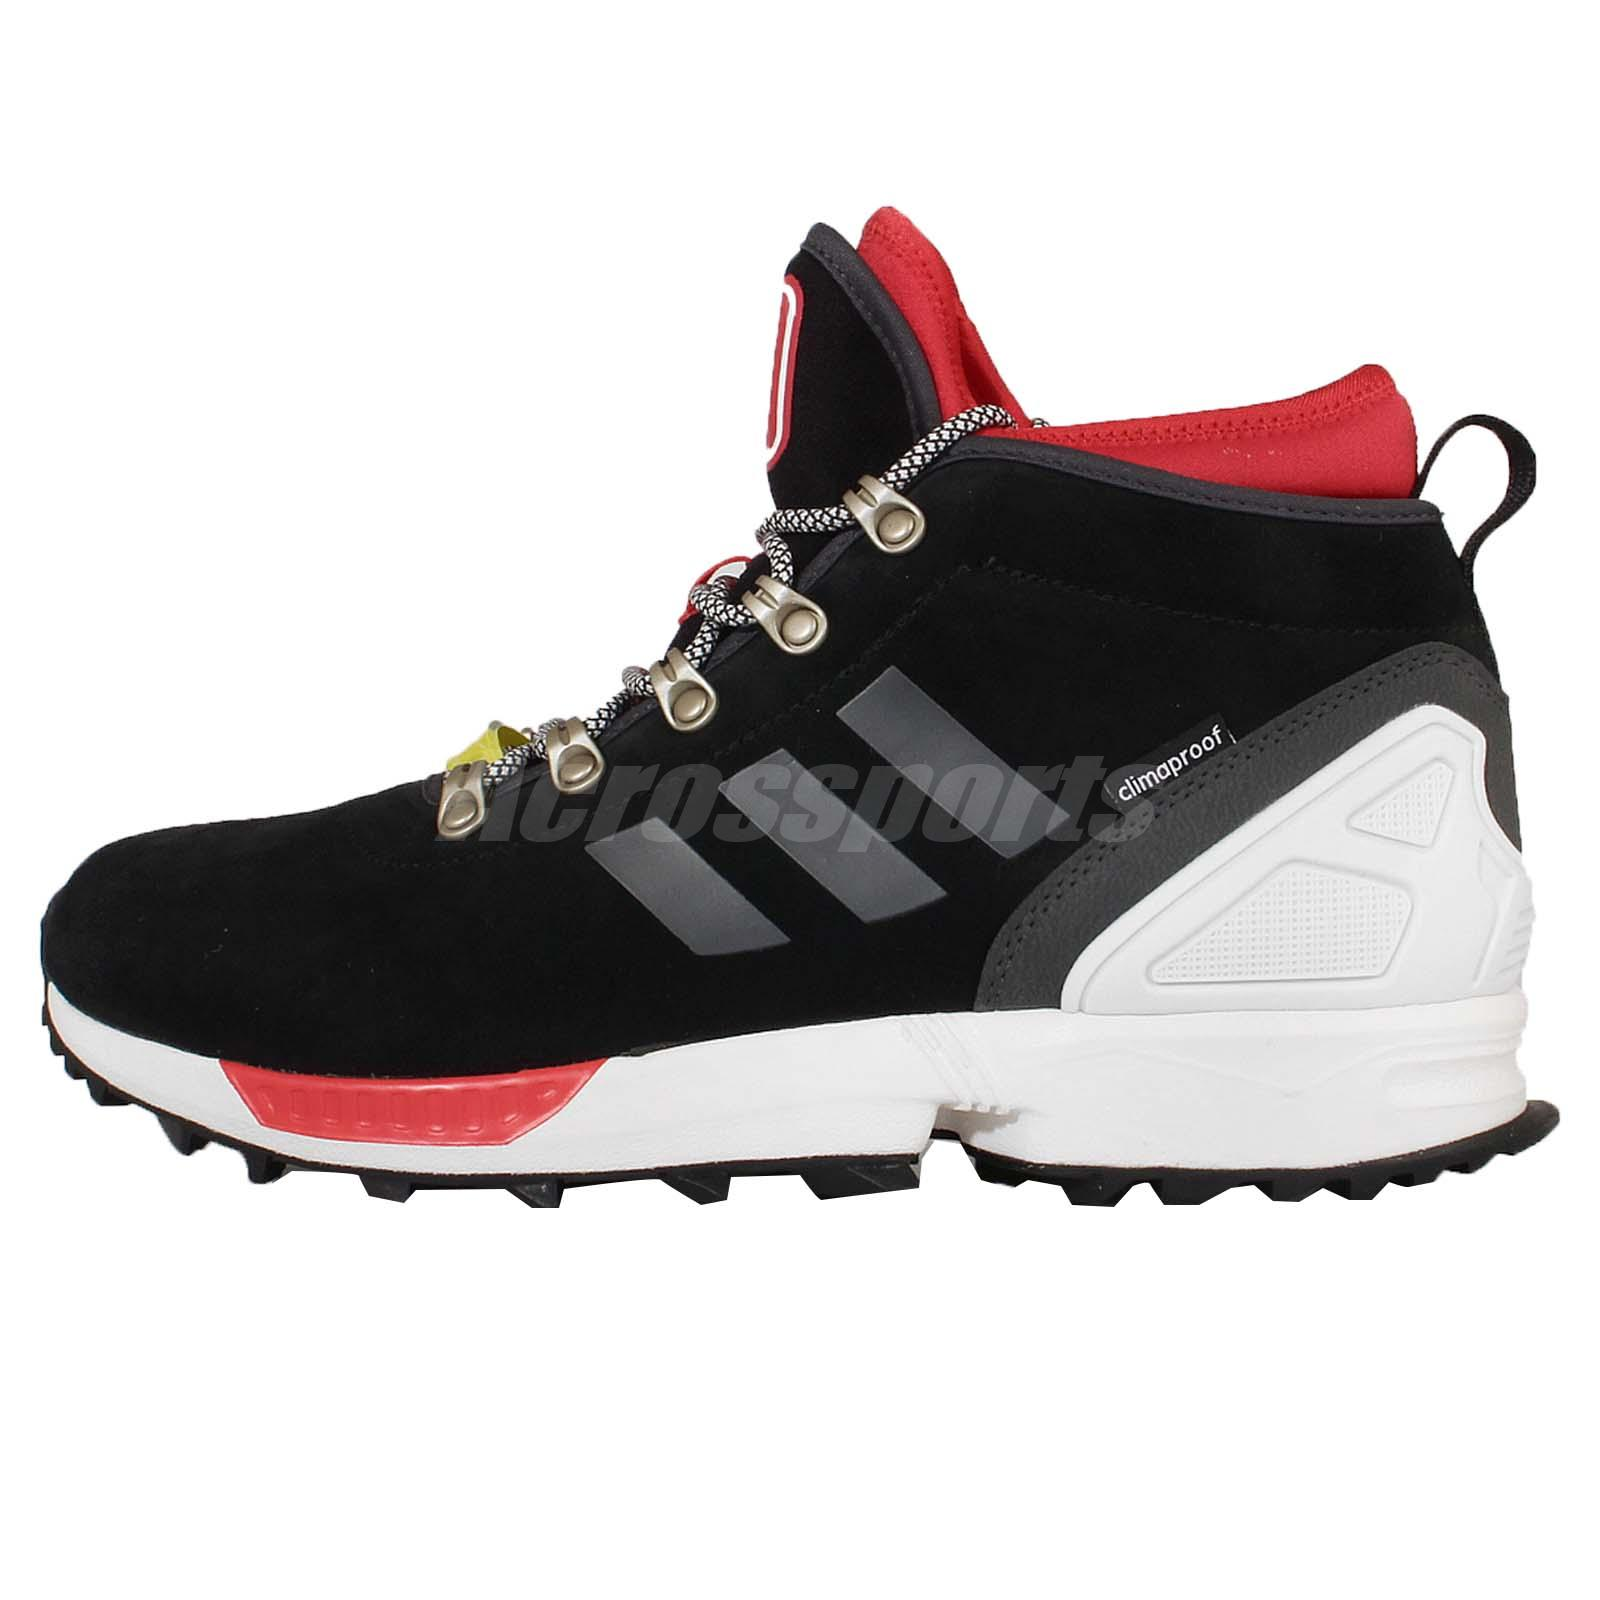 mi Adidas Triple Red ZX Flux Red October bright custom on foot feet